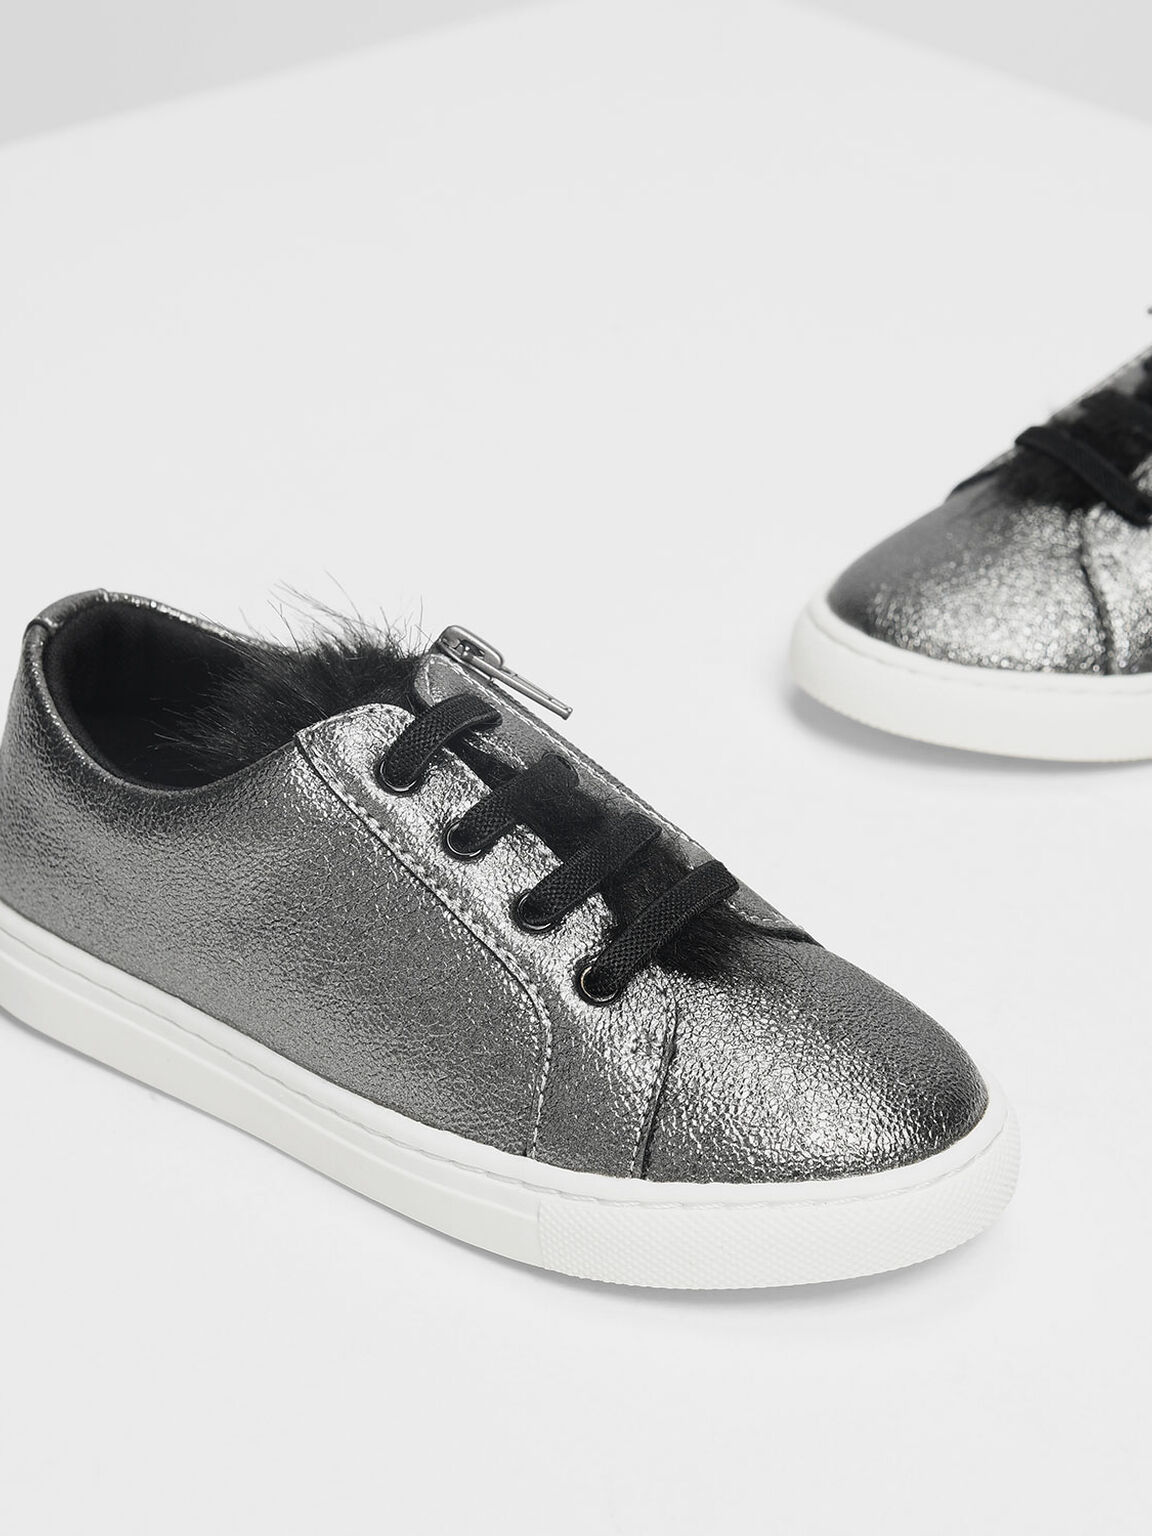 Kids Metallic Sneakers, Pewter, hi-res